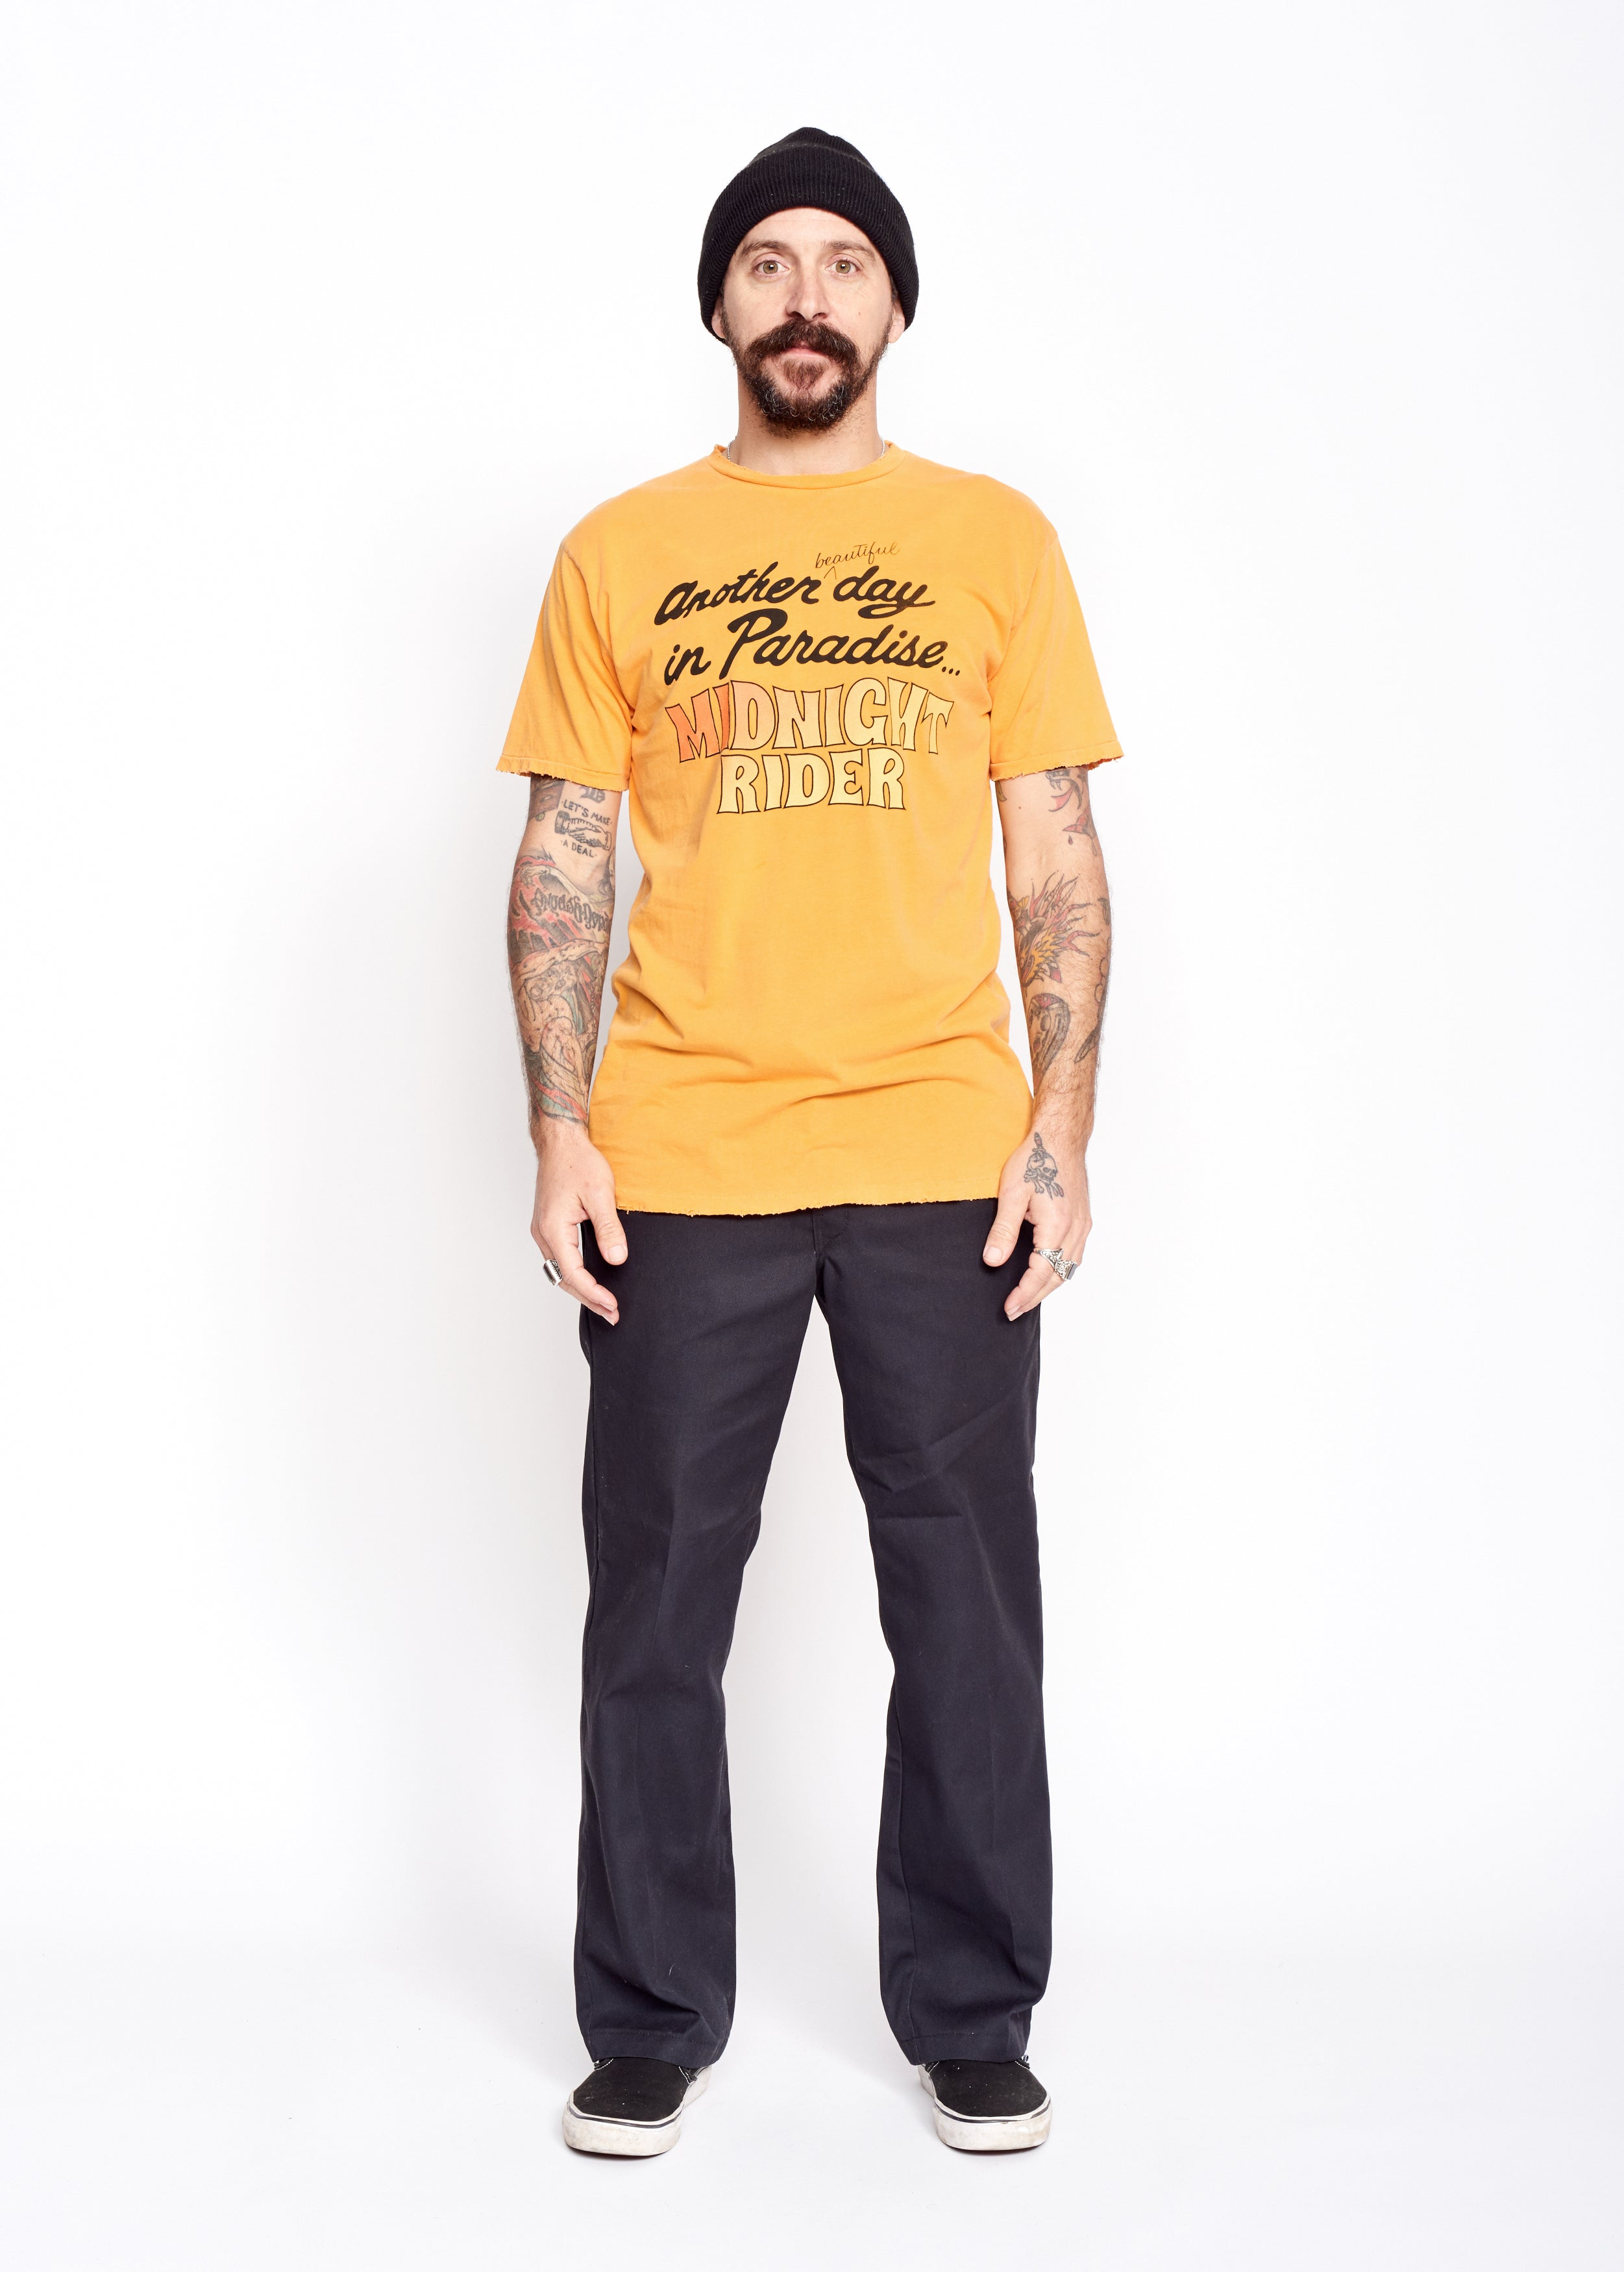 Another Day in Paradise Men's Crew - Marigold - Men's Tee Shirt - Midnight Rider